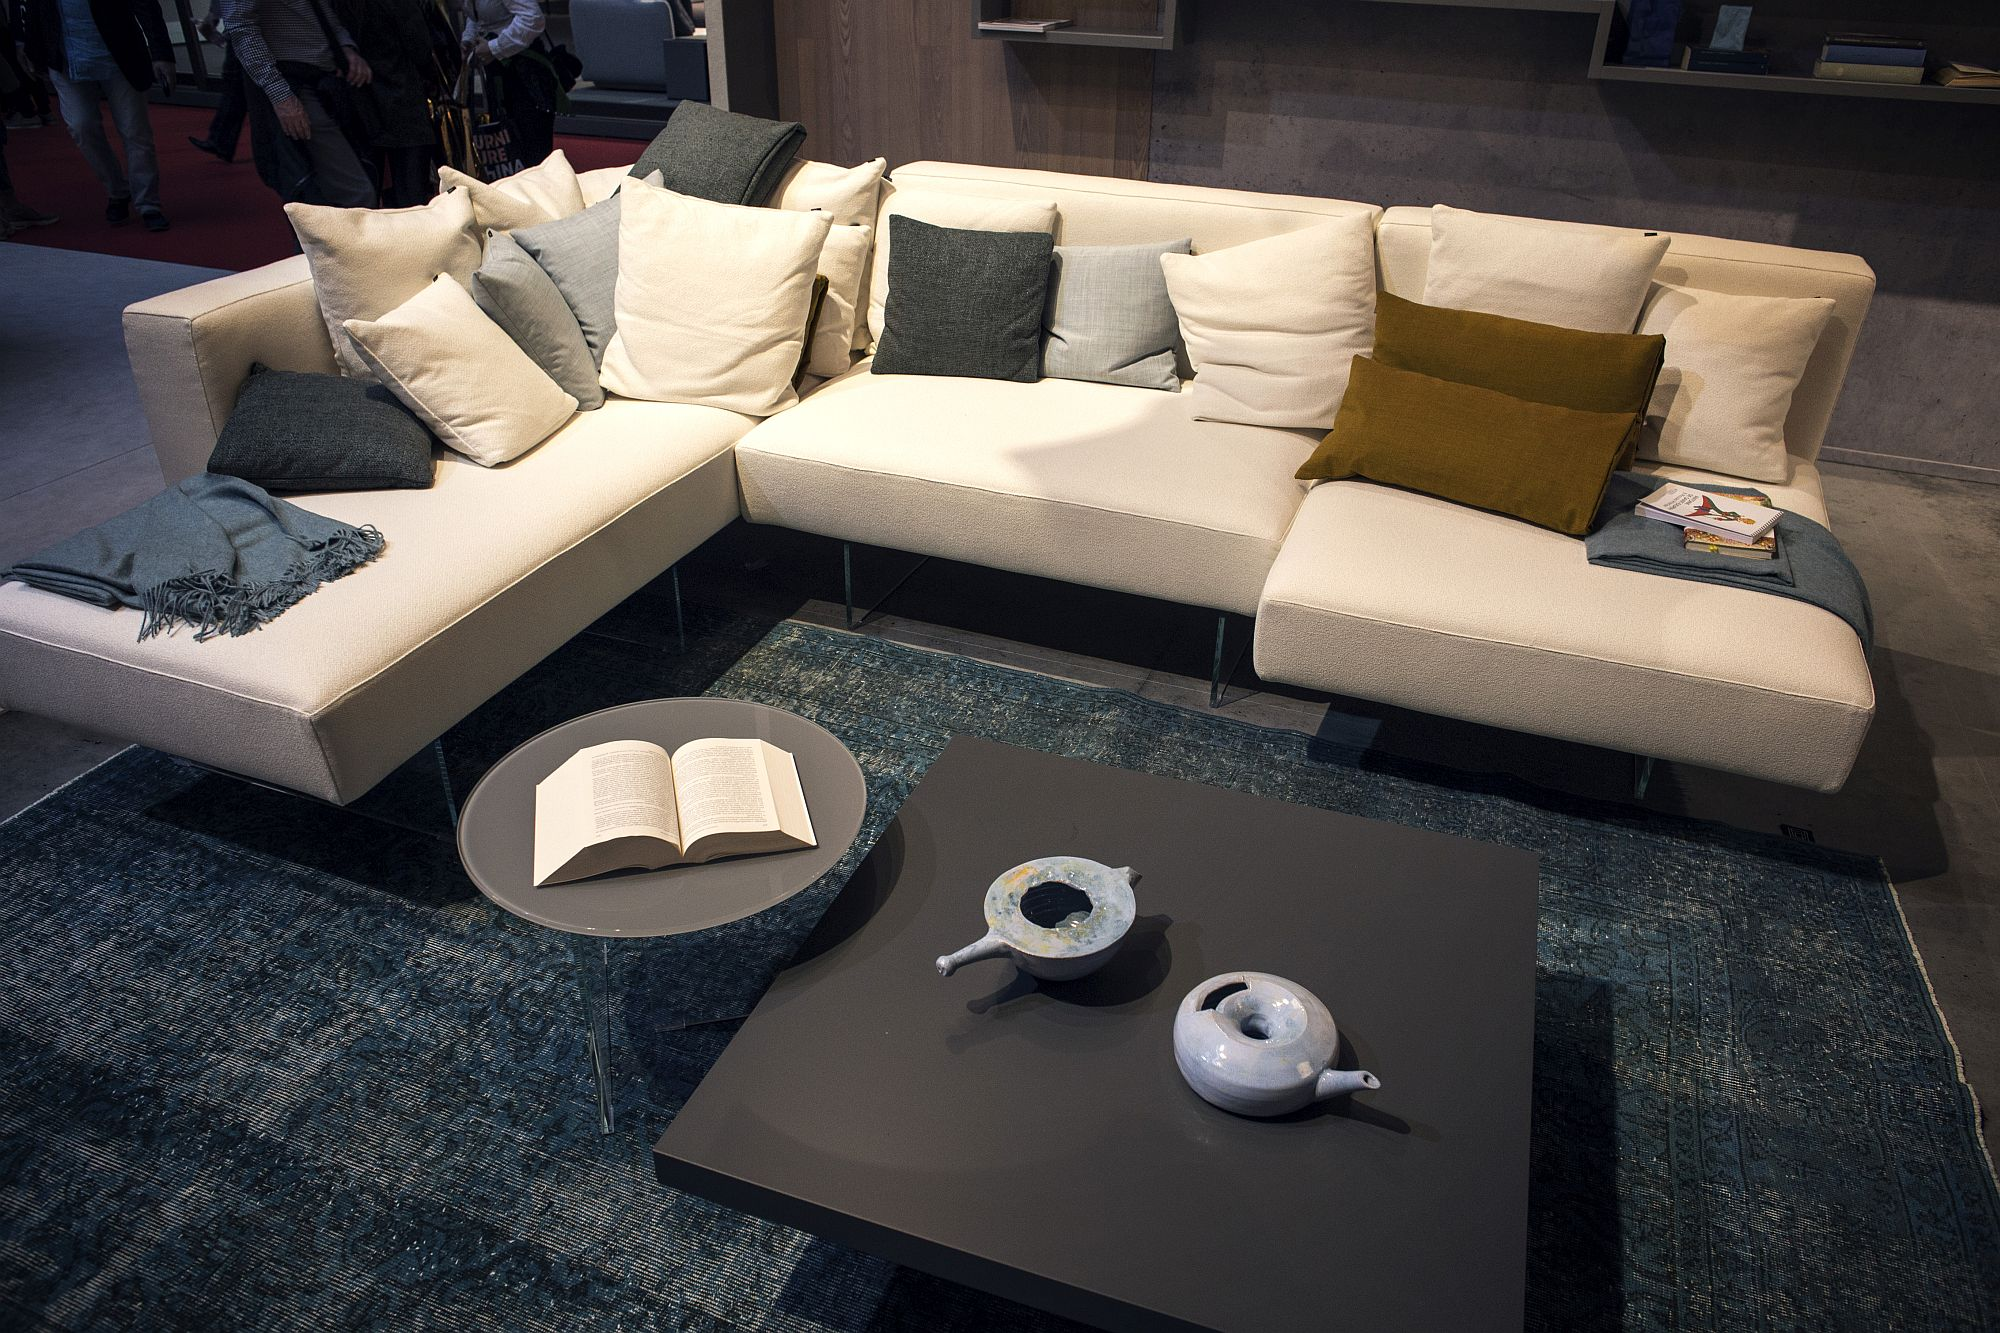 Shopping Smart Modern Sofas in Black White and a Blend of the Two